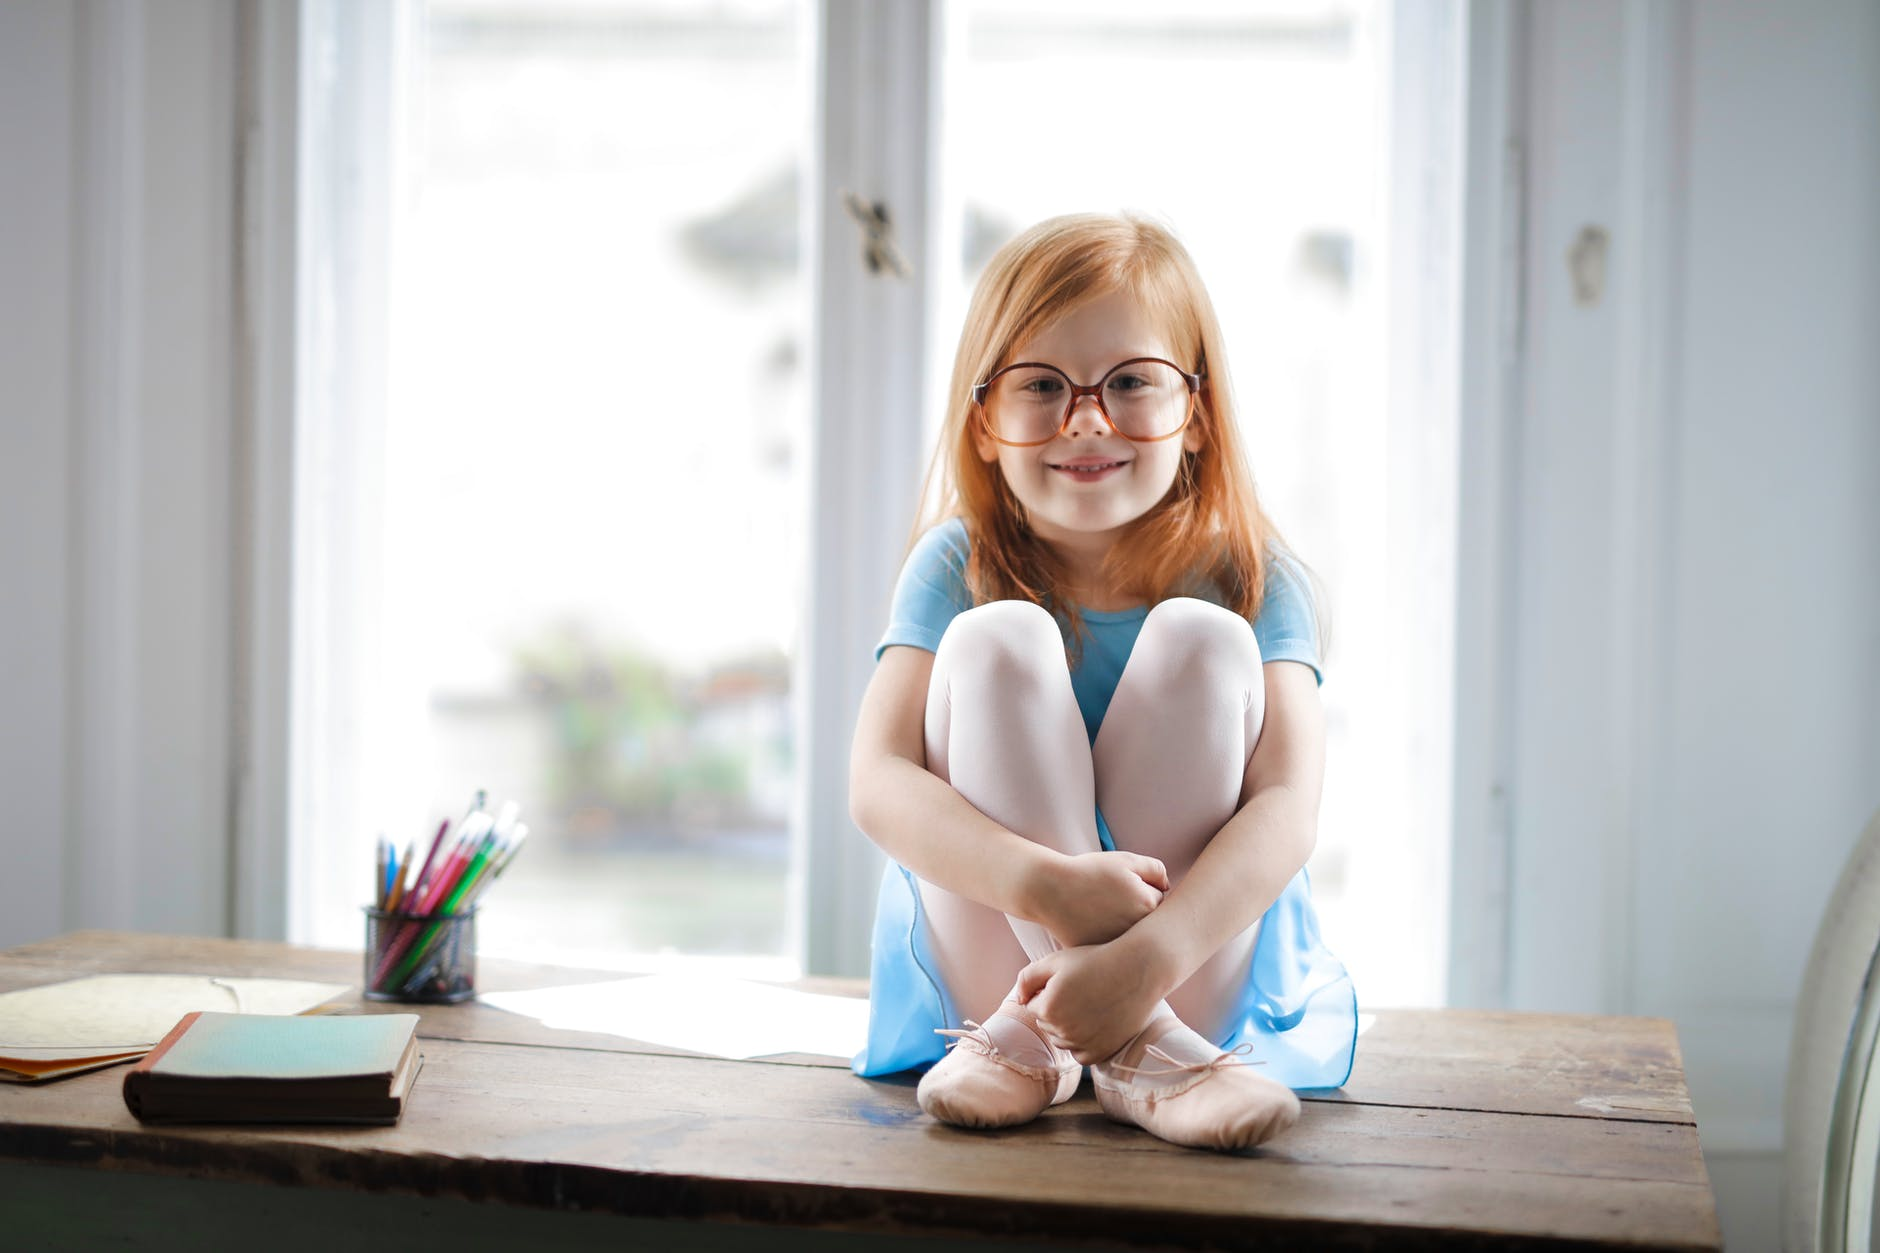 happy cute small girl in glasses sitting on table in light living room